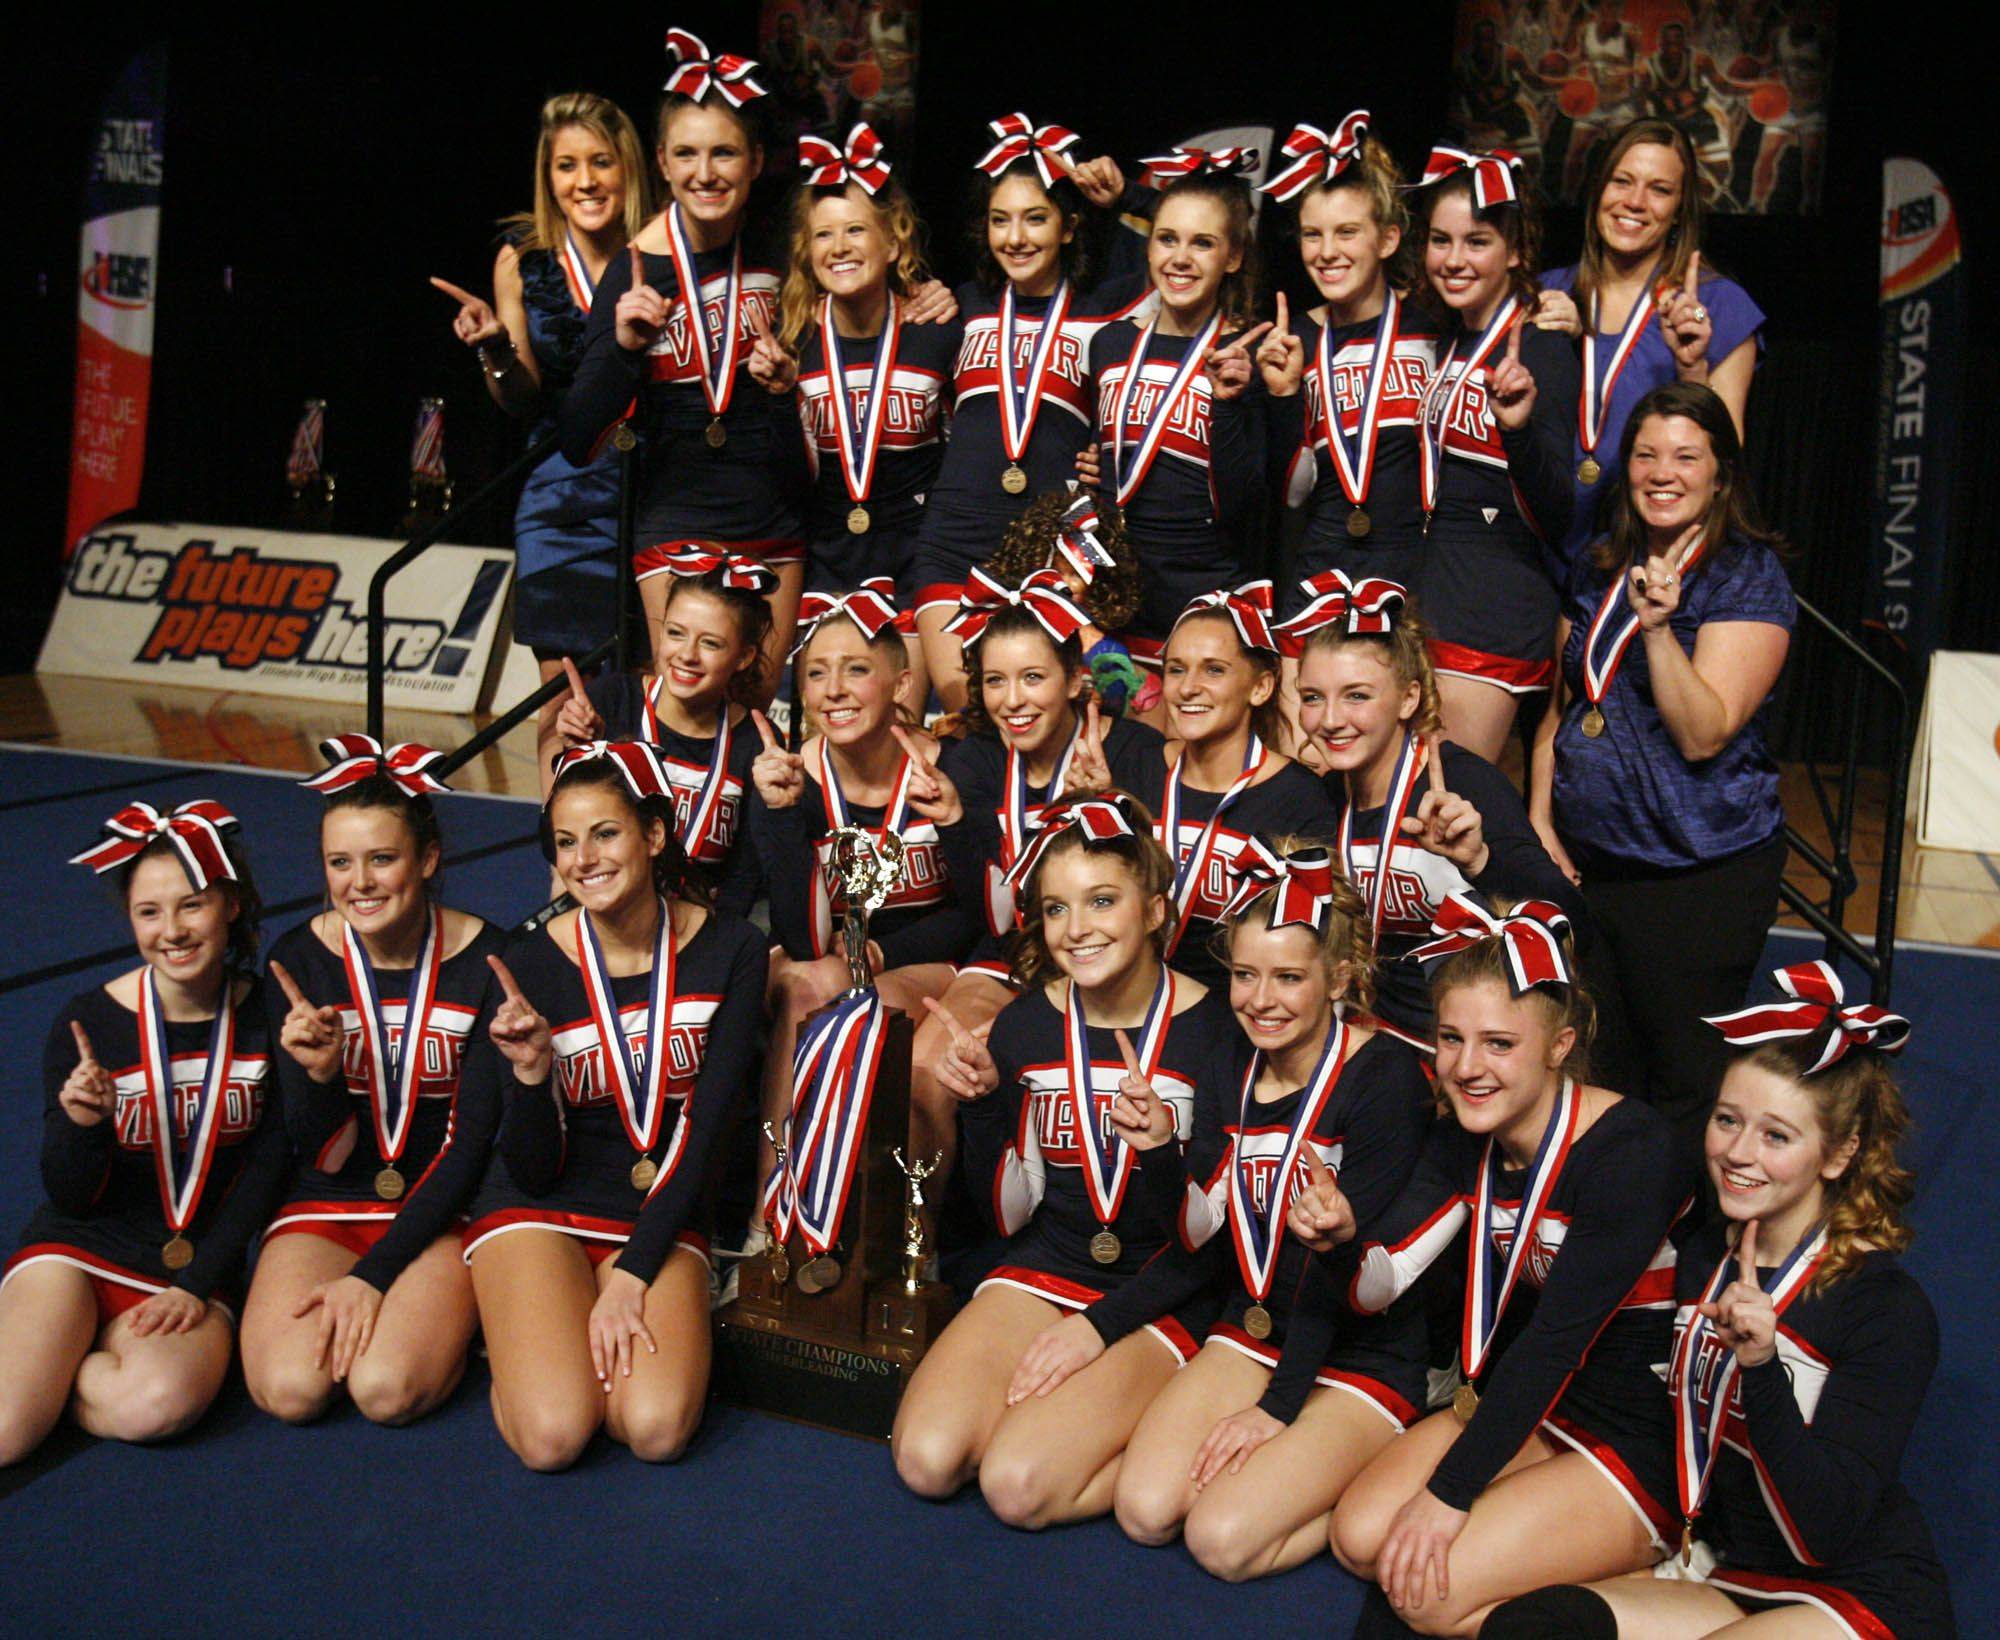 St. Viator high school cheerleading team took first place at IHSA cheerleading state finals for the medium school category at U.S. Cellular Coliseum in Bloomington on Saturday, February 4th.